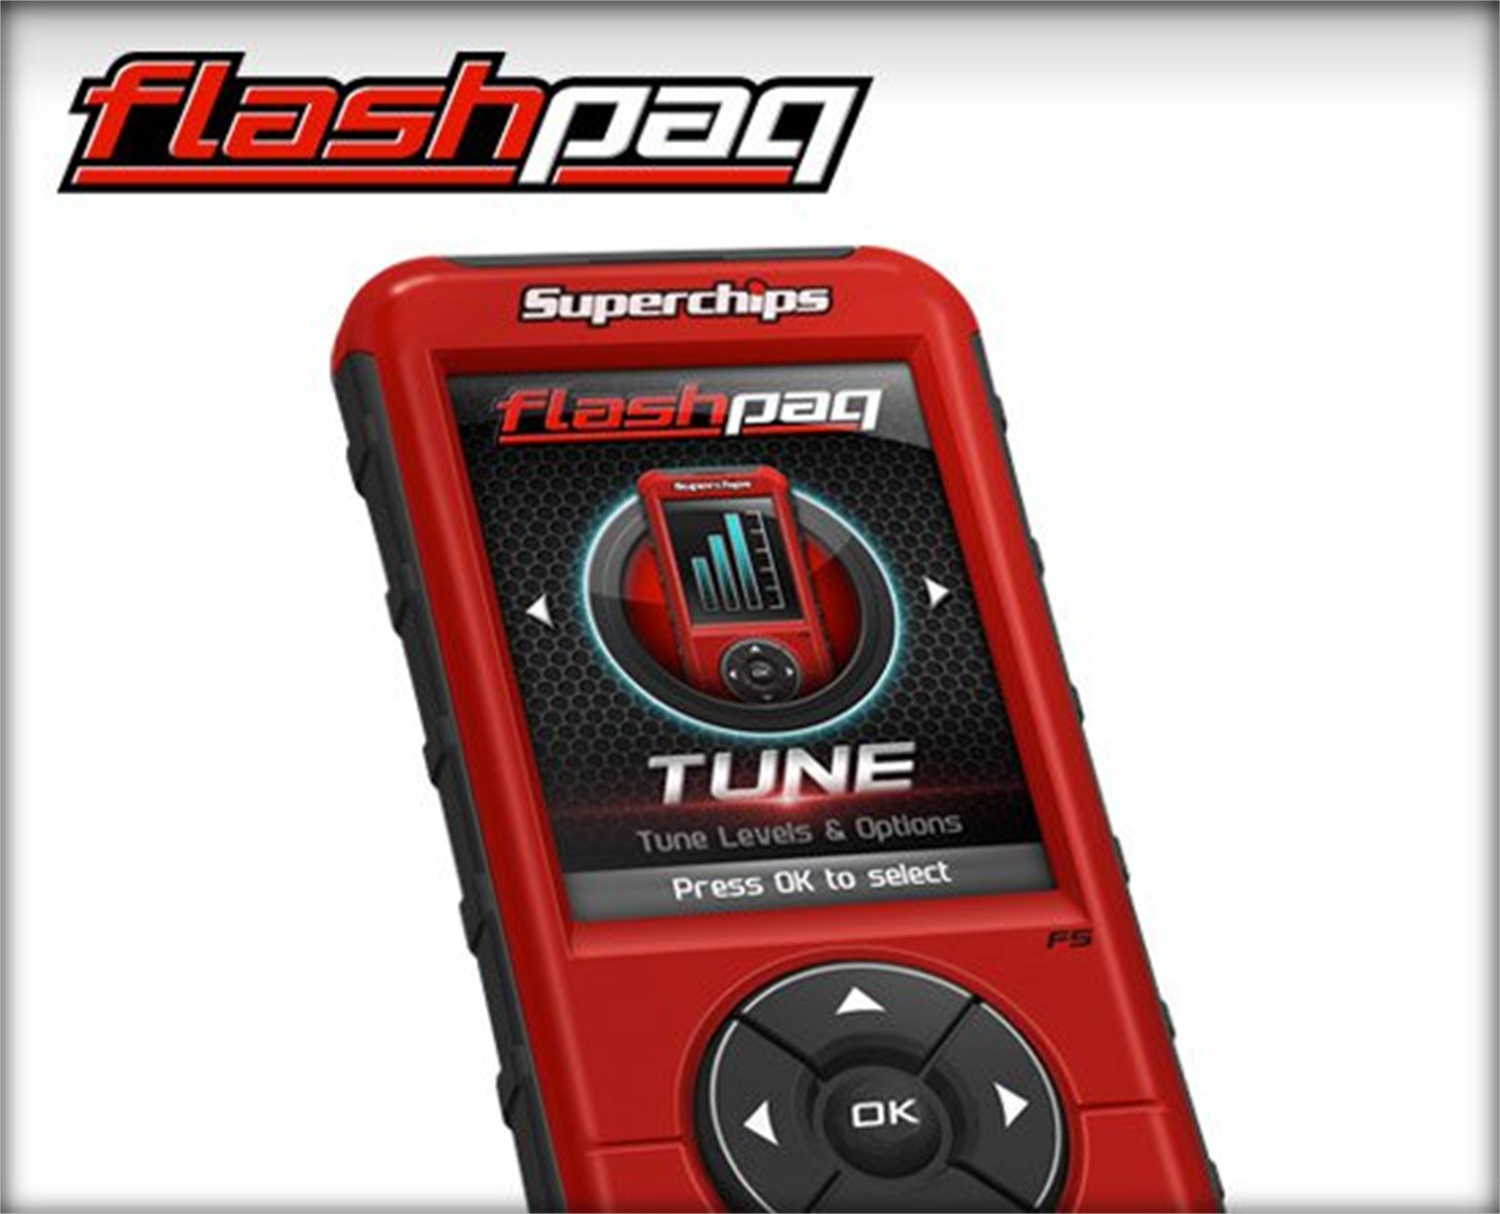 Flashpaq F5 Programmer, Industry Leading Handheld Tuner, California Edition